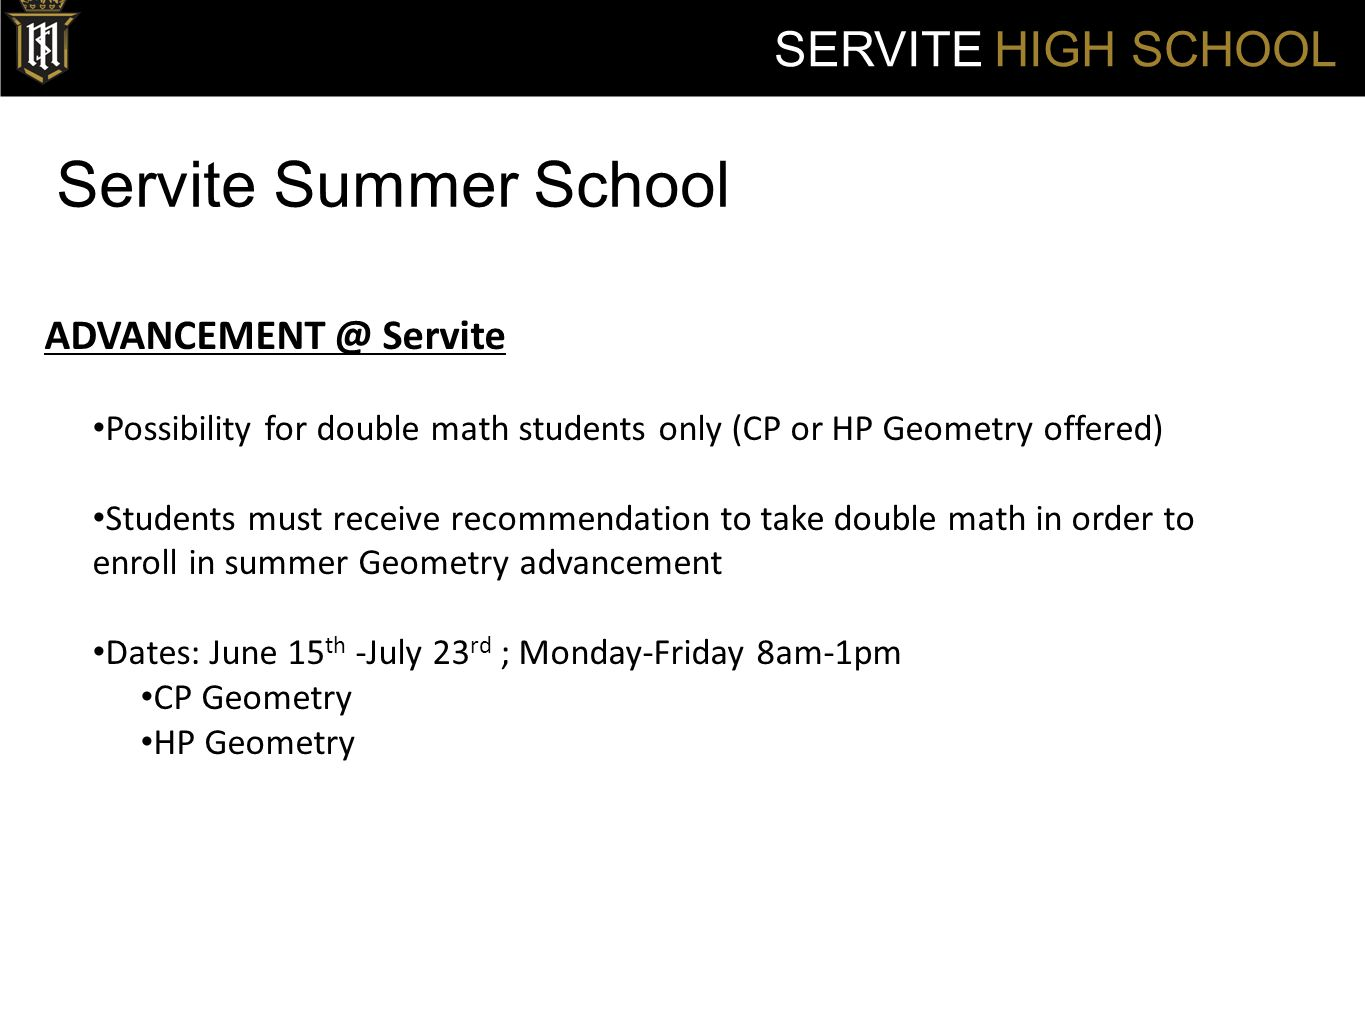 Servite Summer School SERVITE HIGH SCHOOL ADVANCEMENT @ Servite Possibility for double math students only (CP or HP Geometry offered) Students must receive recommendation to take double math in order to enroll in summer Geometry advancement Dates: June 15 th -July 23 rd ; Monday-Friday 8am-1pm CP Geometry HP Geometry